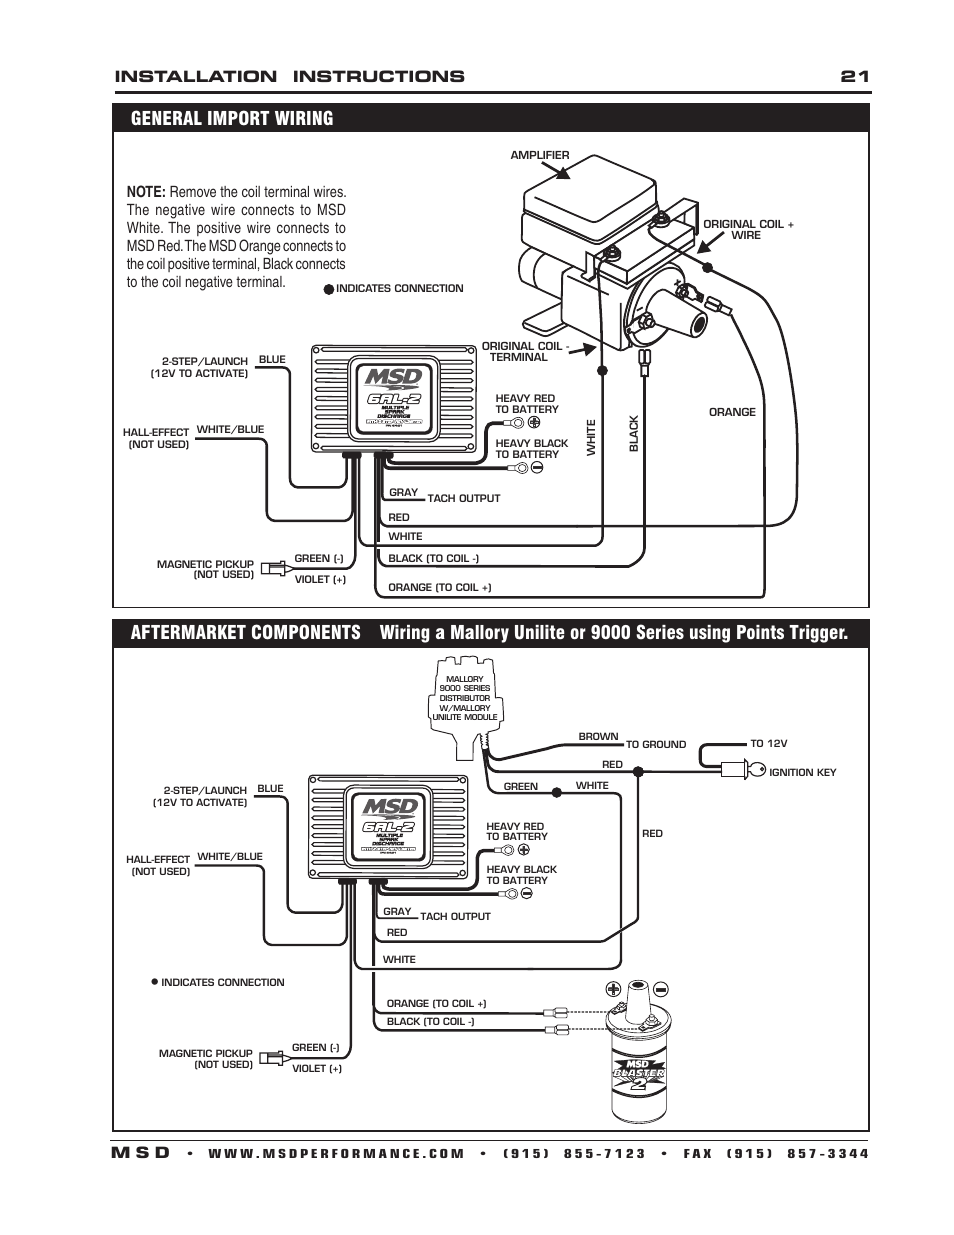 msd 6421 6al 2 ignition control installation page21?resize\\\\\\\=665%2C861 mallory unilite wiring diagram & how do i wire my mallory mallory 6al wiring diagram at bakdesigns.co